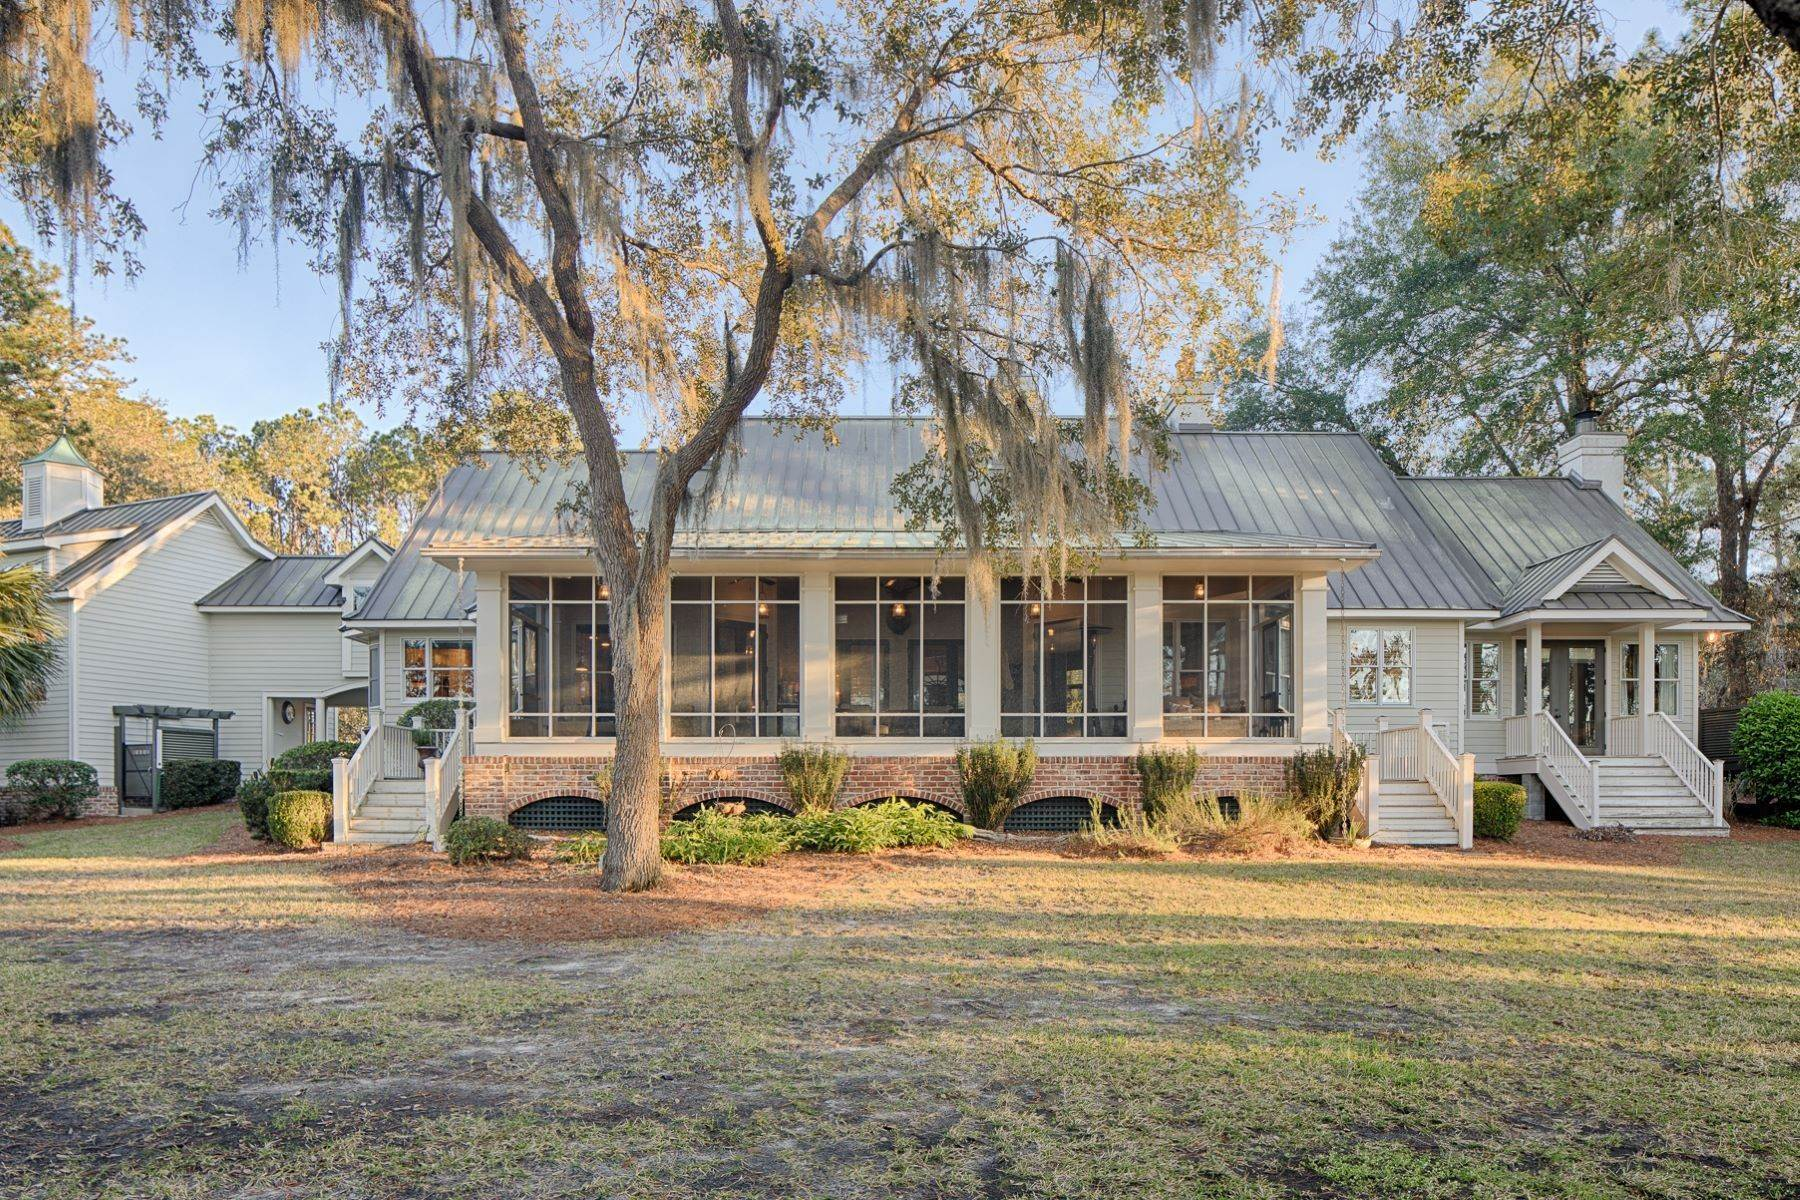 41. Single Family Homes for Sale at 7 Acres in Gascoigne Bluff 155 Gascoigne Bluff Road Bluffton, South Carolina 29910 United States